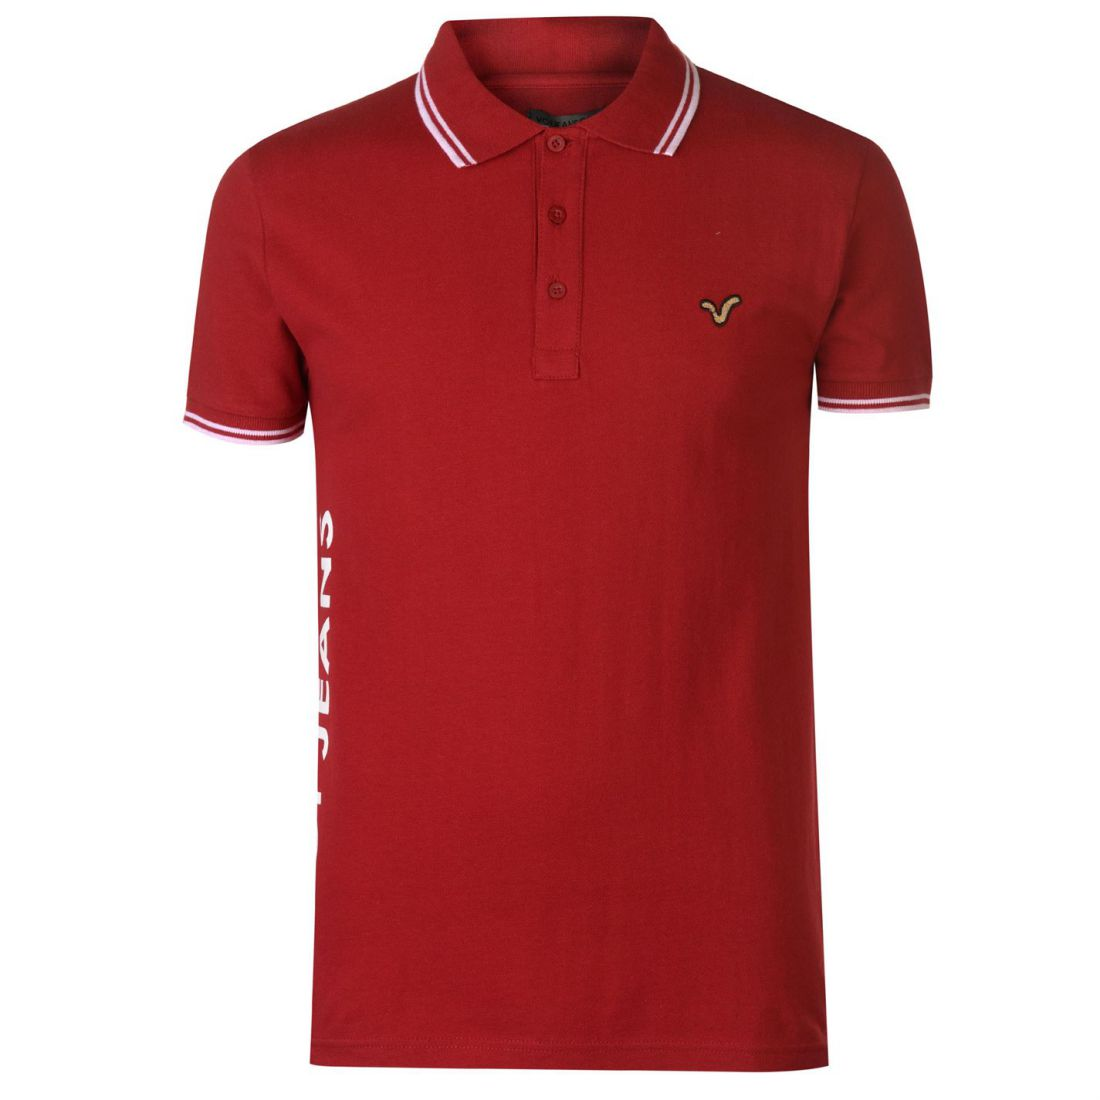 VOI-Mens-Side-Logo-Polo-Shirt-Slim-Fit-Tee-Top-Short-Sleeve-Lightweight-Cotton thumbnail 6